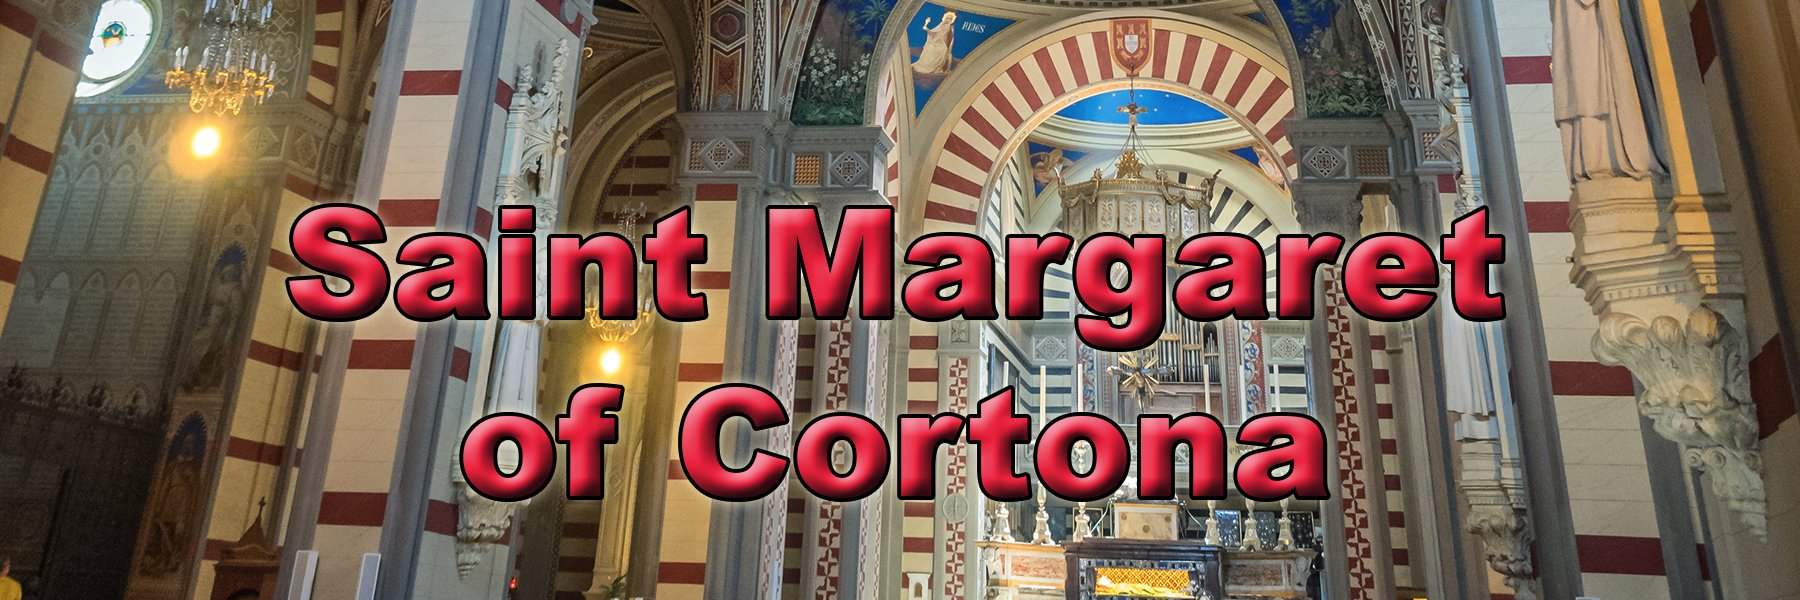 Saint Margaret of Cortona - sinner turned Saint